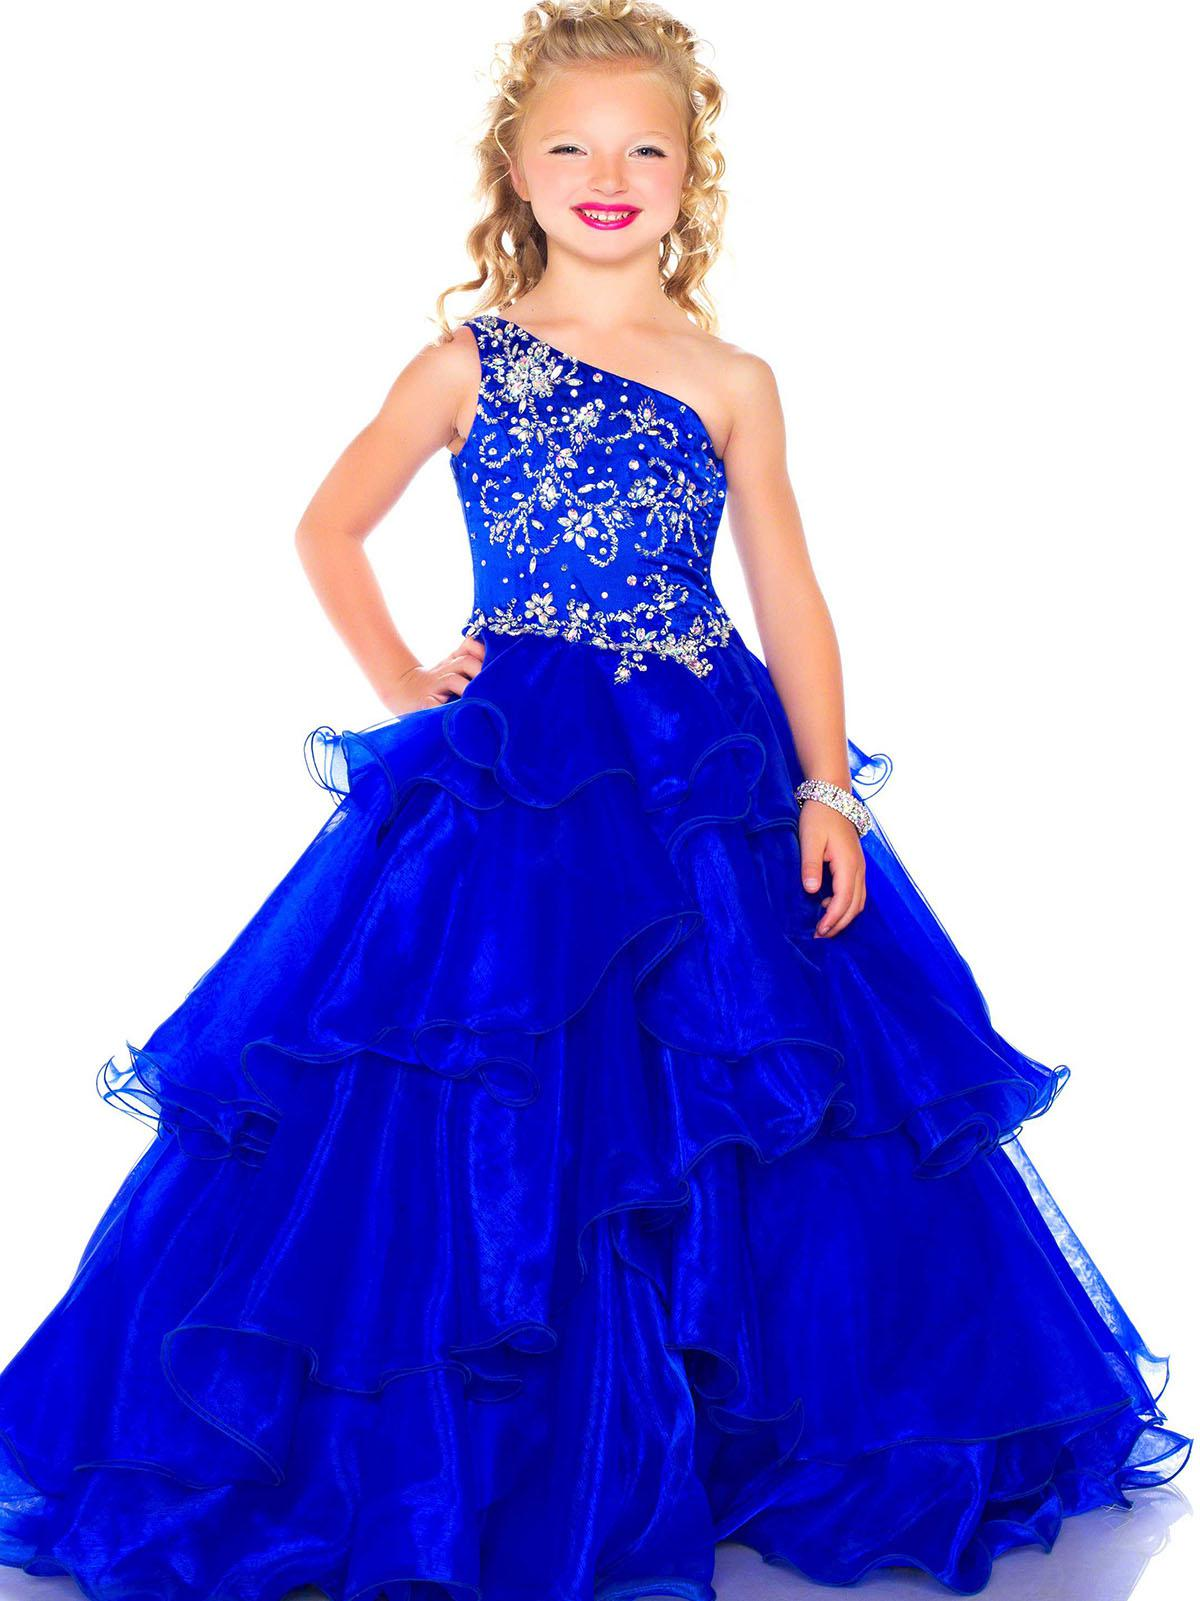 Pretty Blue One Shoulder Beads Flower Girl Dresses Girls' Pageant ...